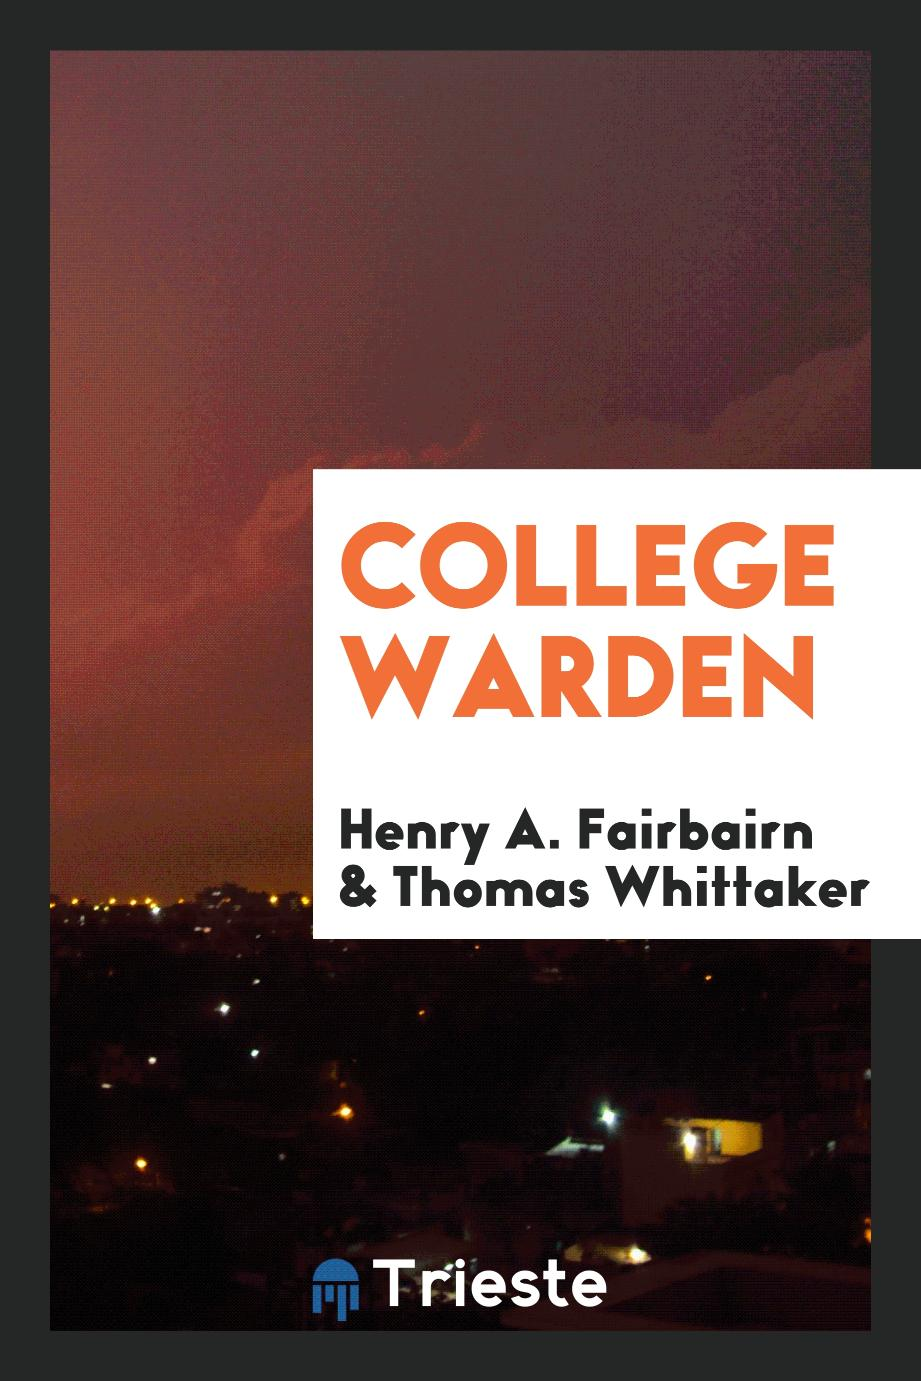 Henry A. Fairbairn, Thomas Whittaker - College Warden